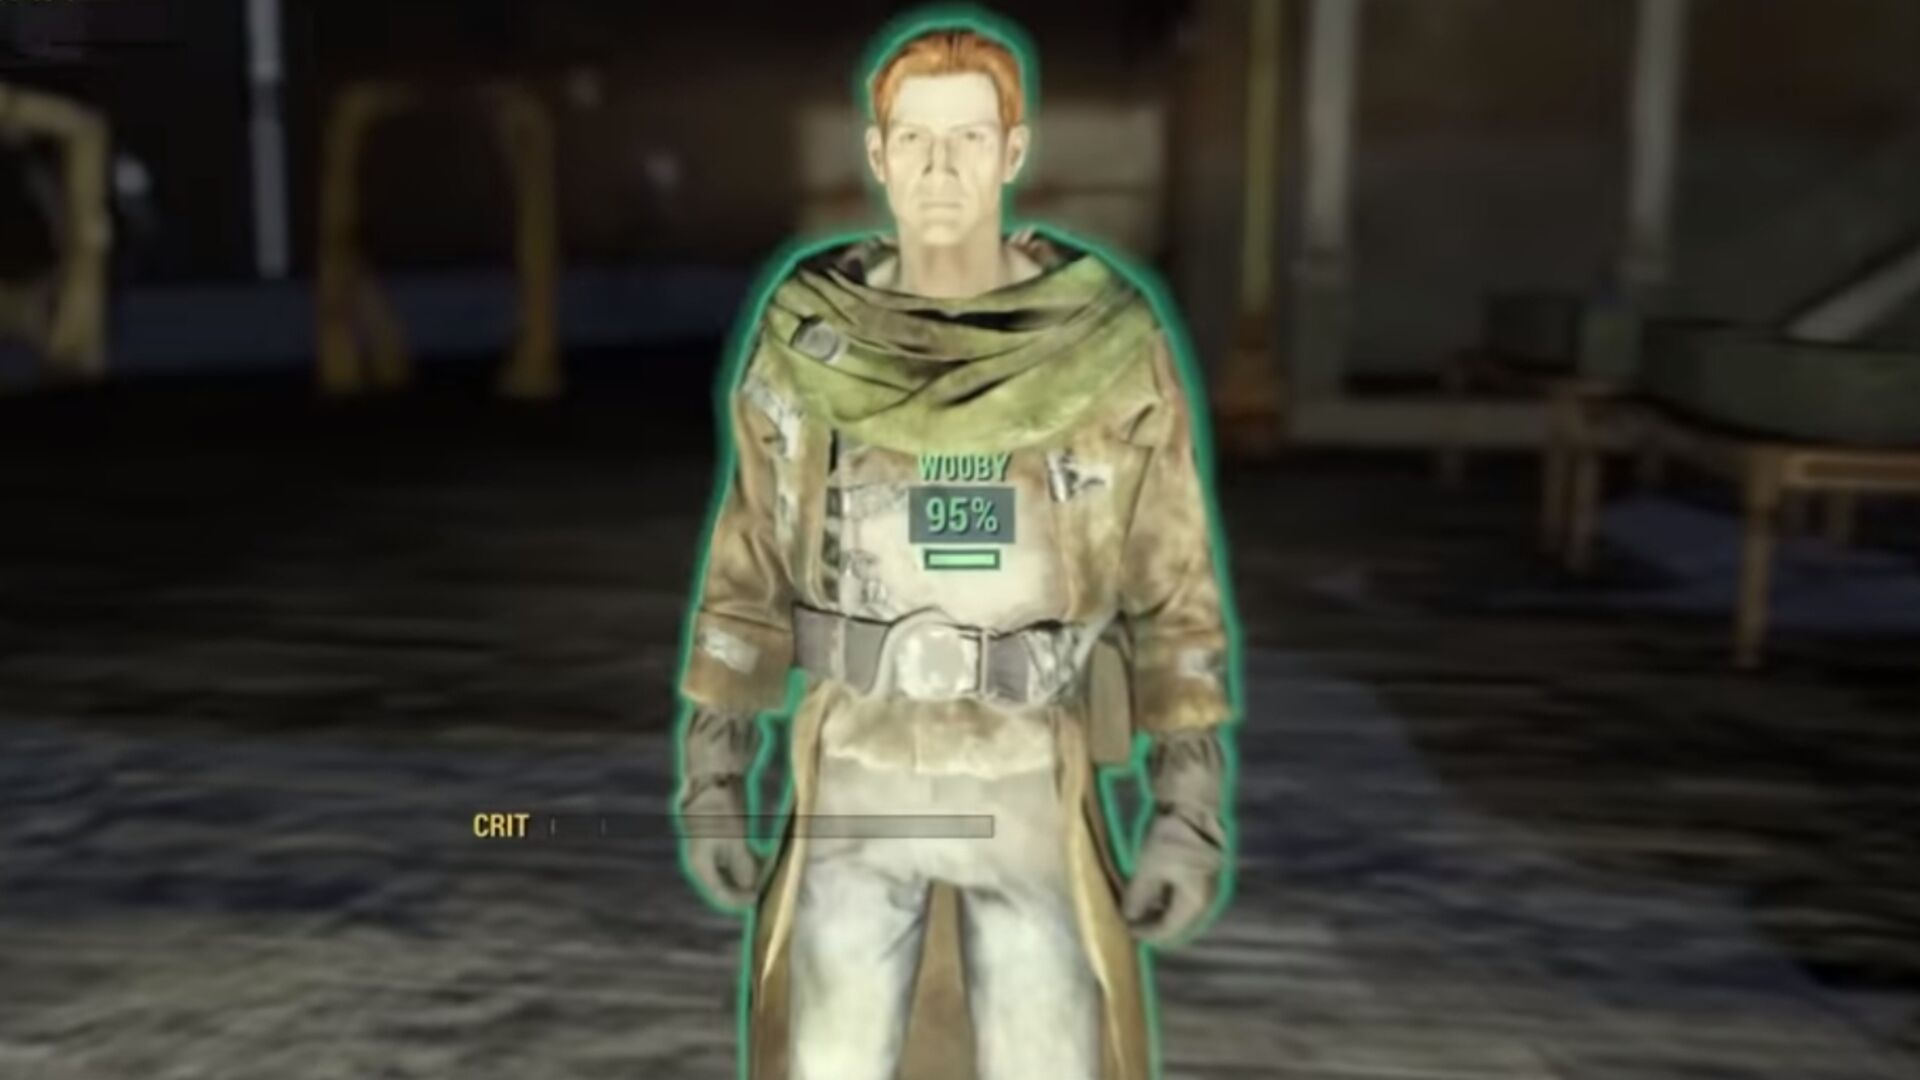 Fallout 76 players are nabbing unreleased items from a secret